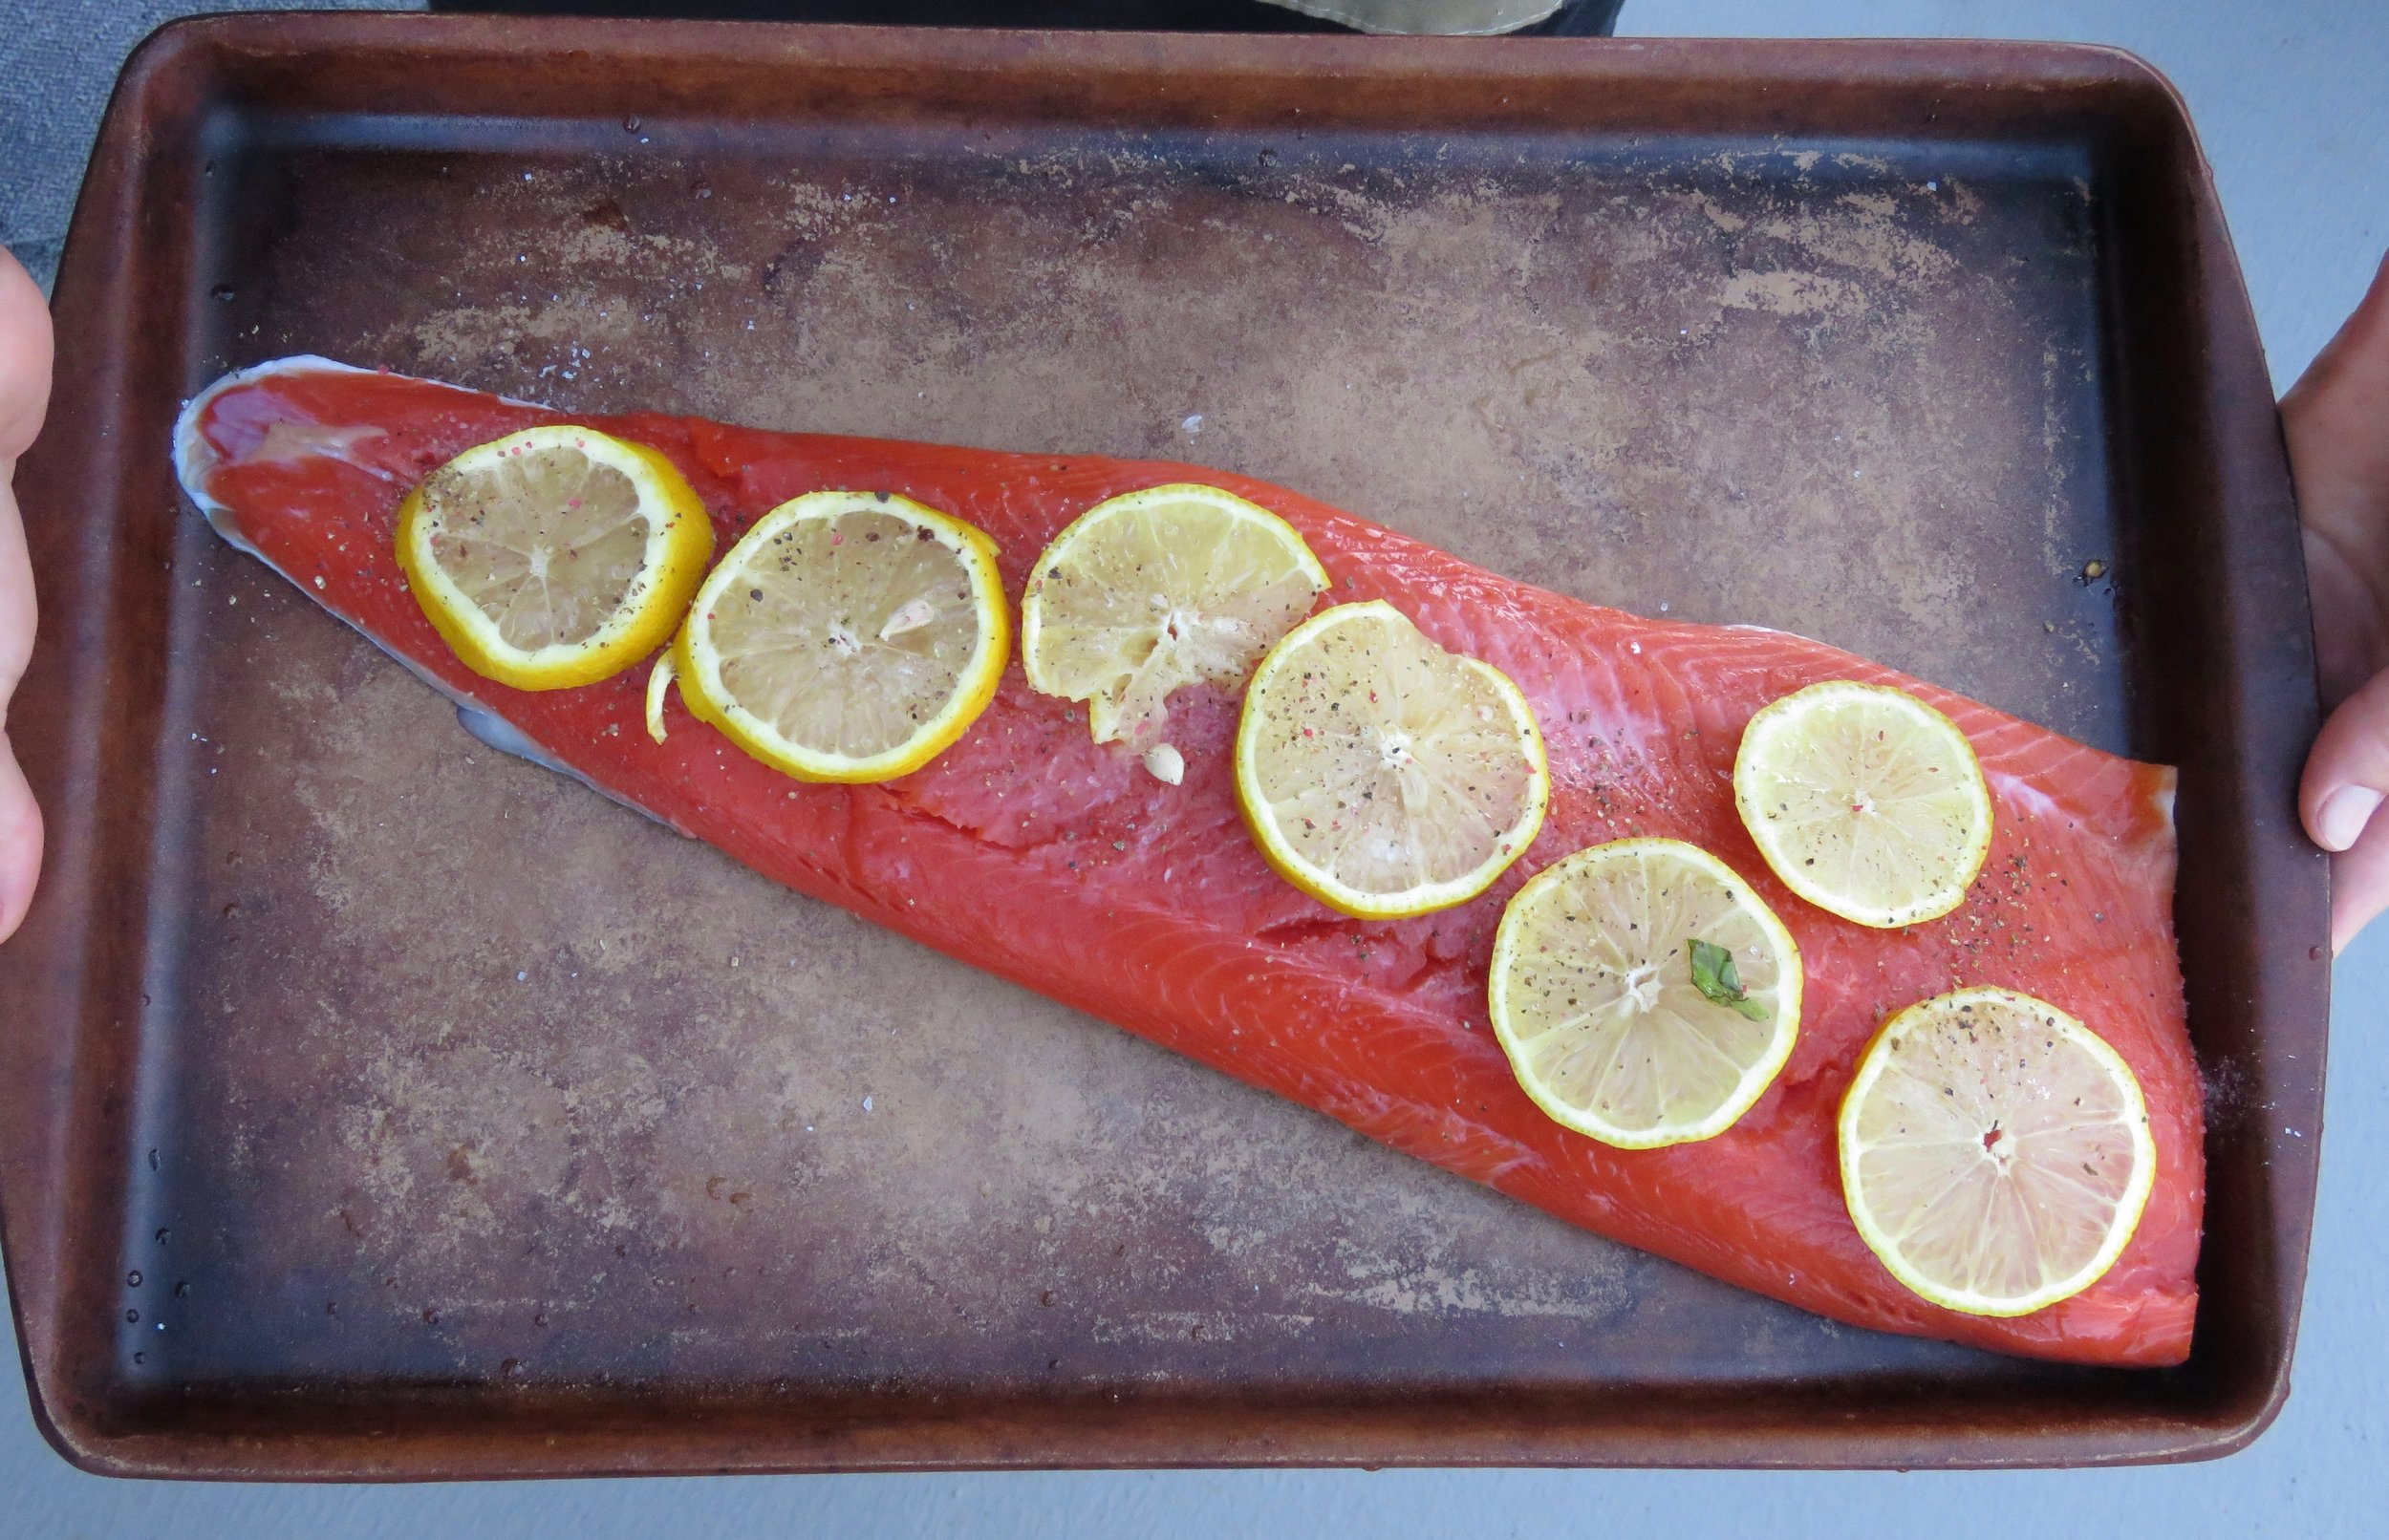 Salmon all ready to roast! We go for wild pacific whenever possible.